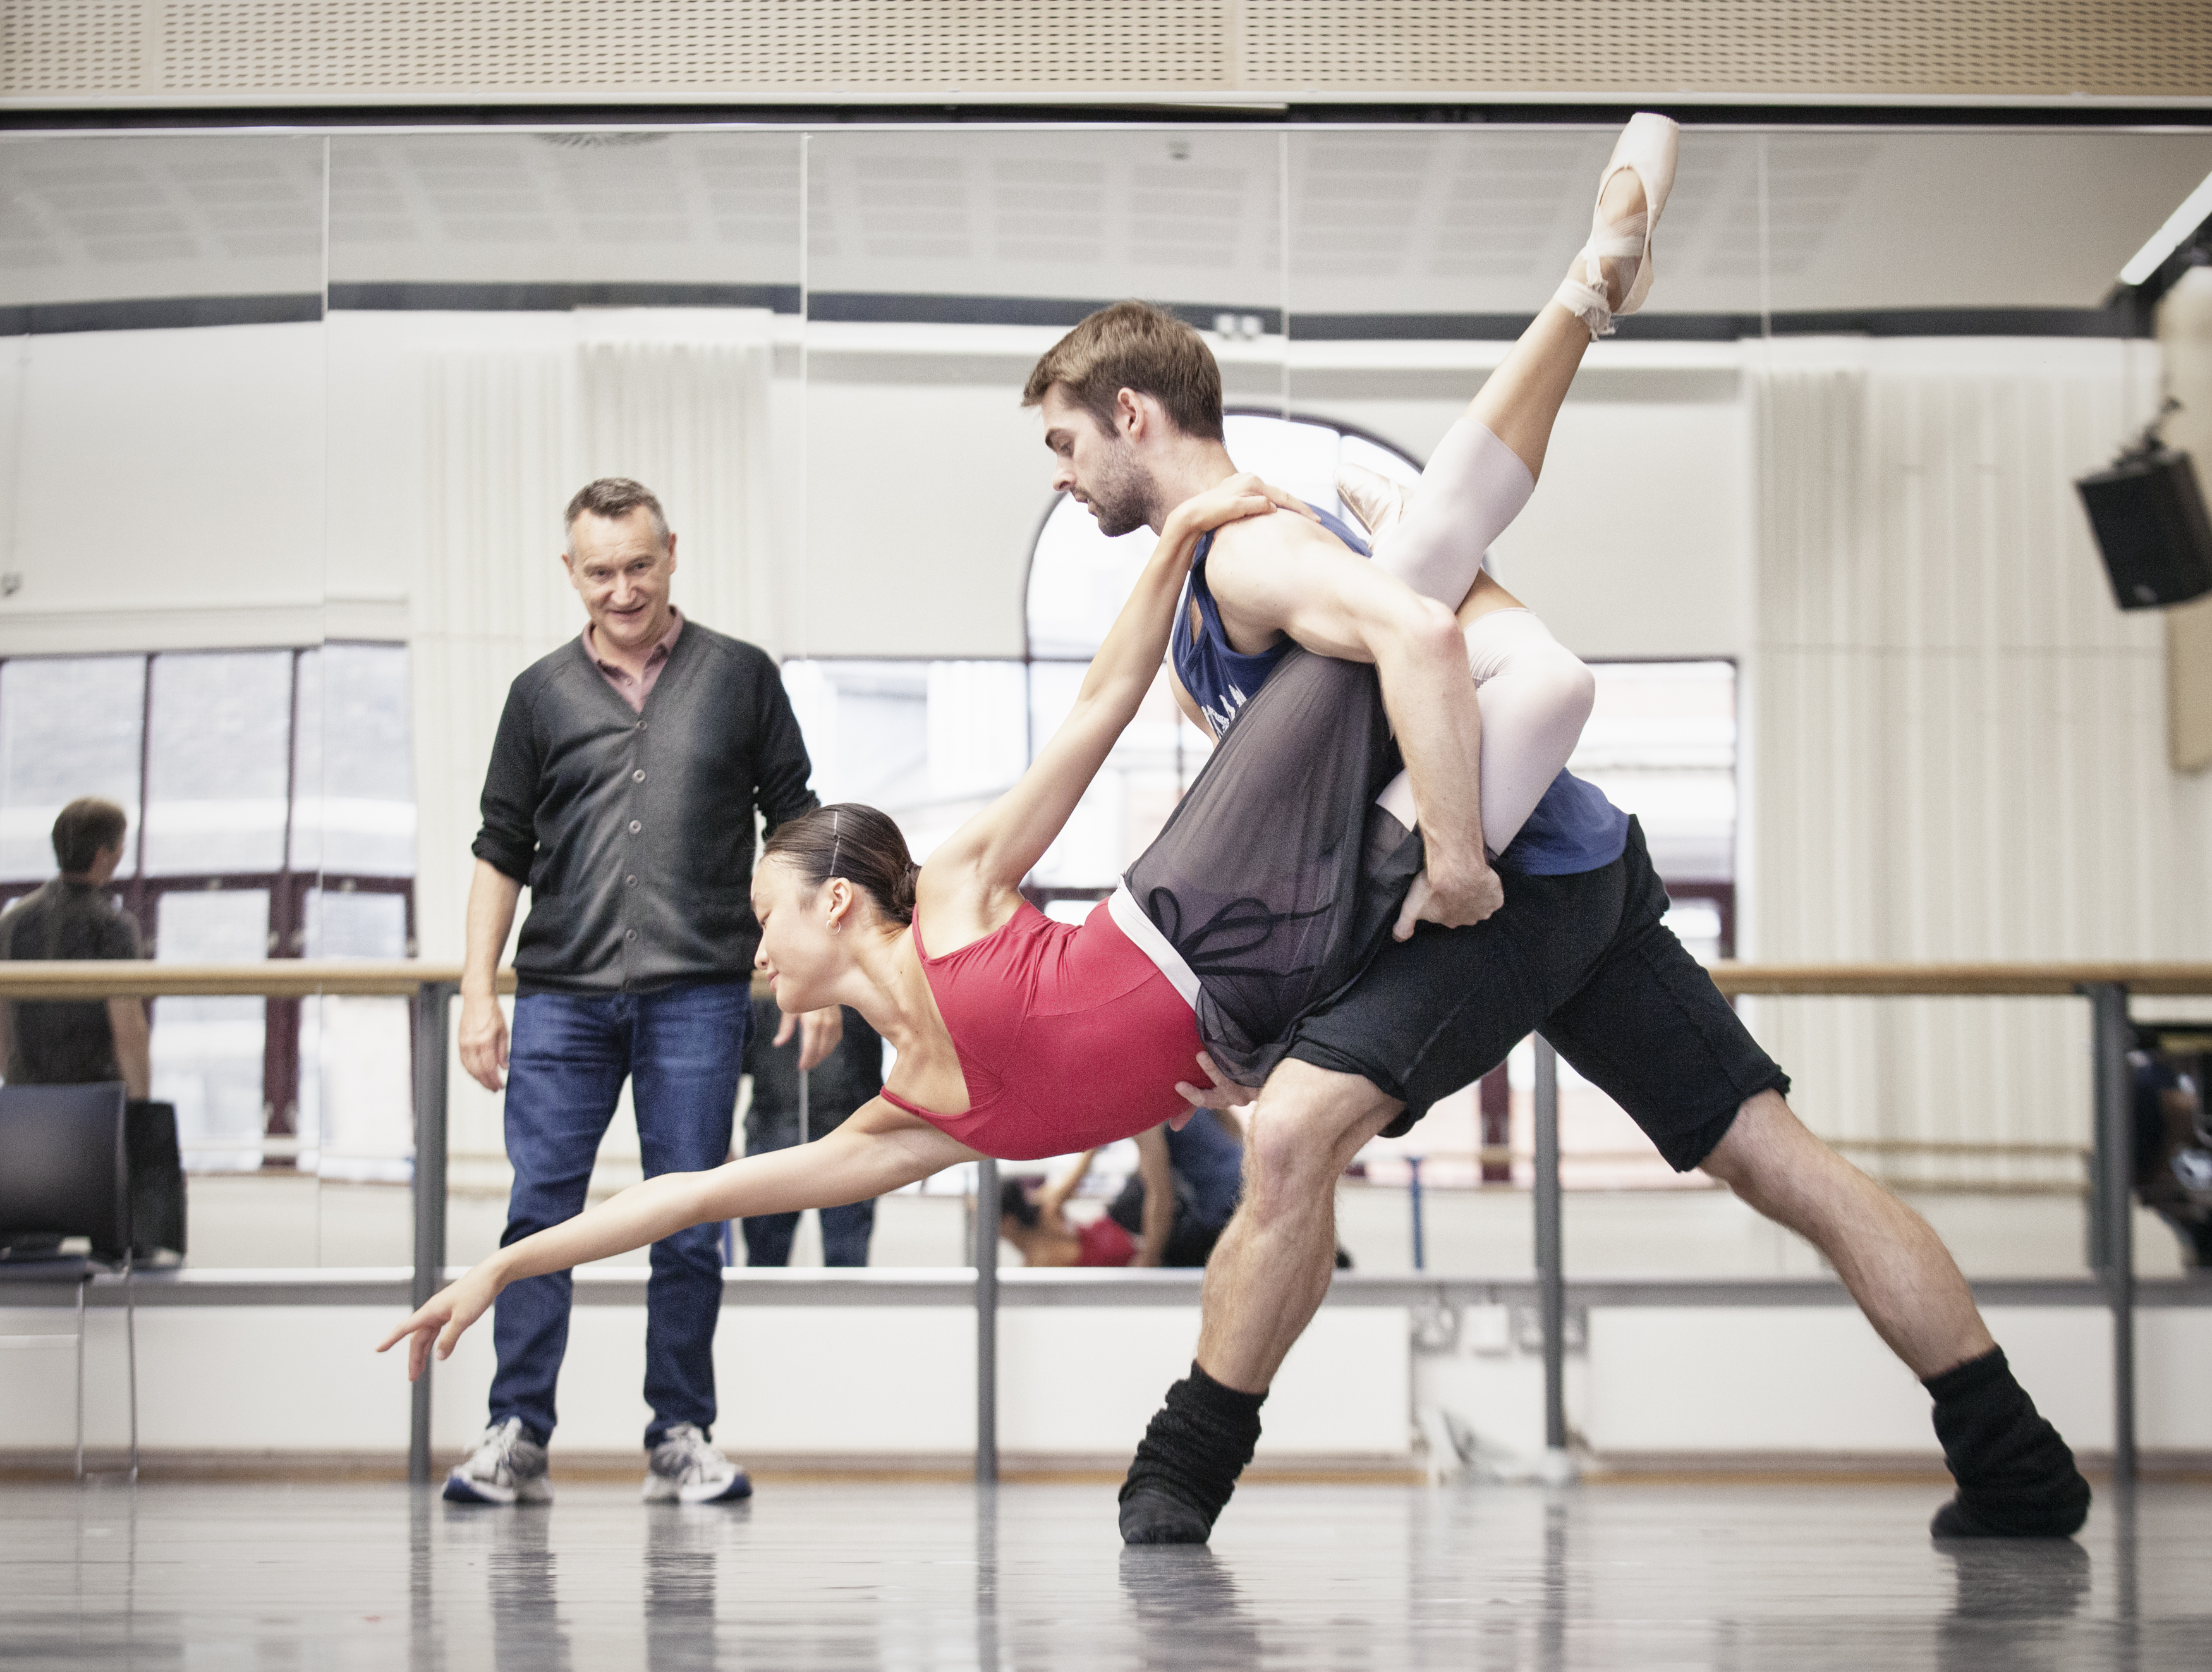 Interview with Birmingham Royal Ballet dancers Lachlan Monaghan and Yaoqian Shang